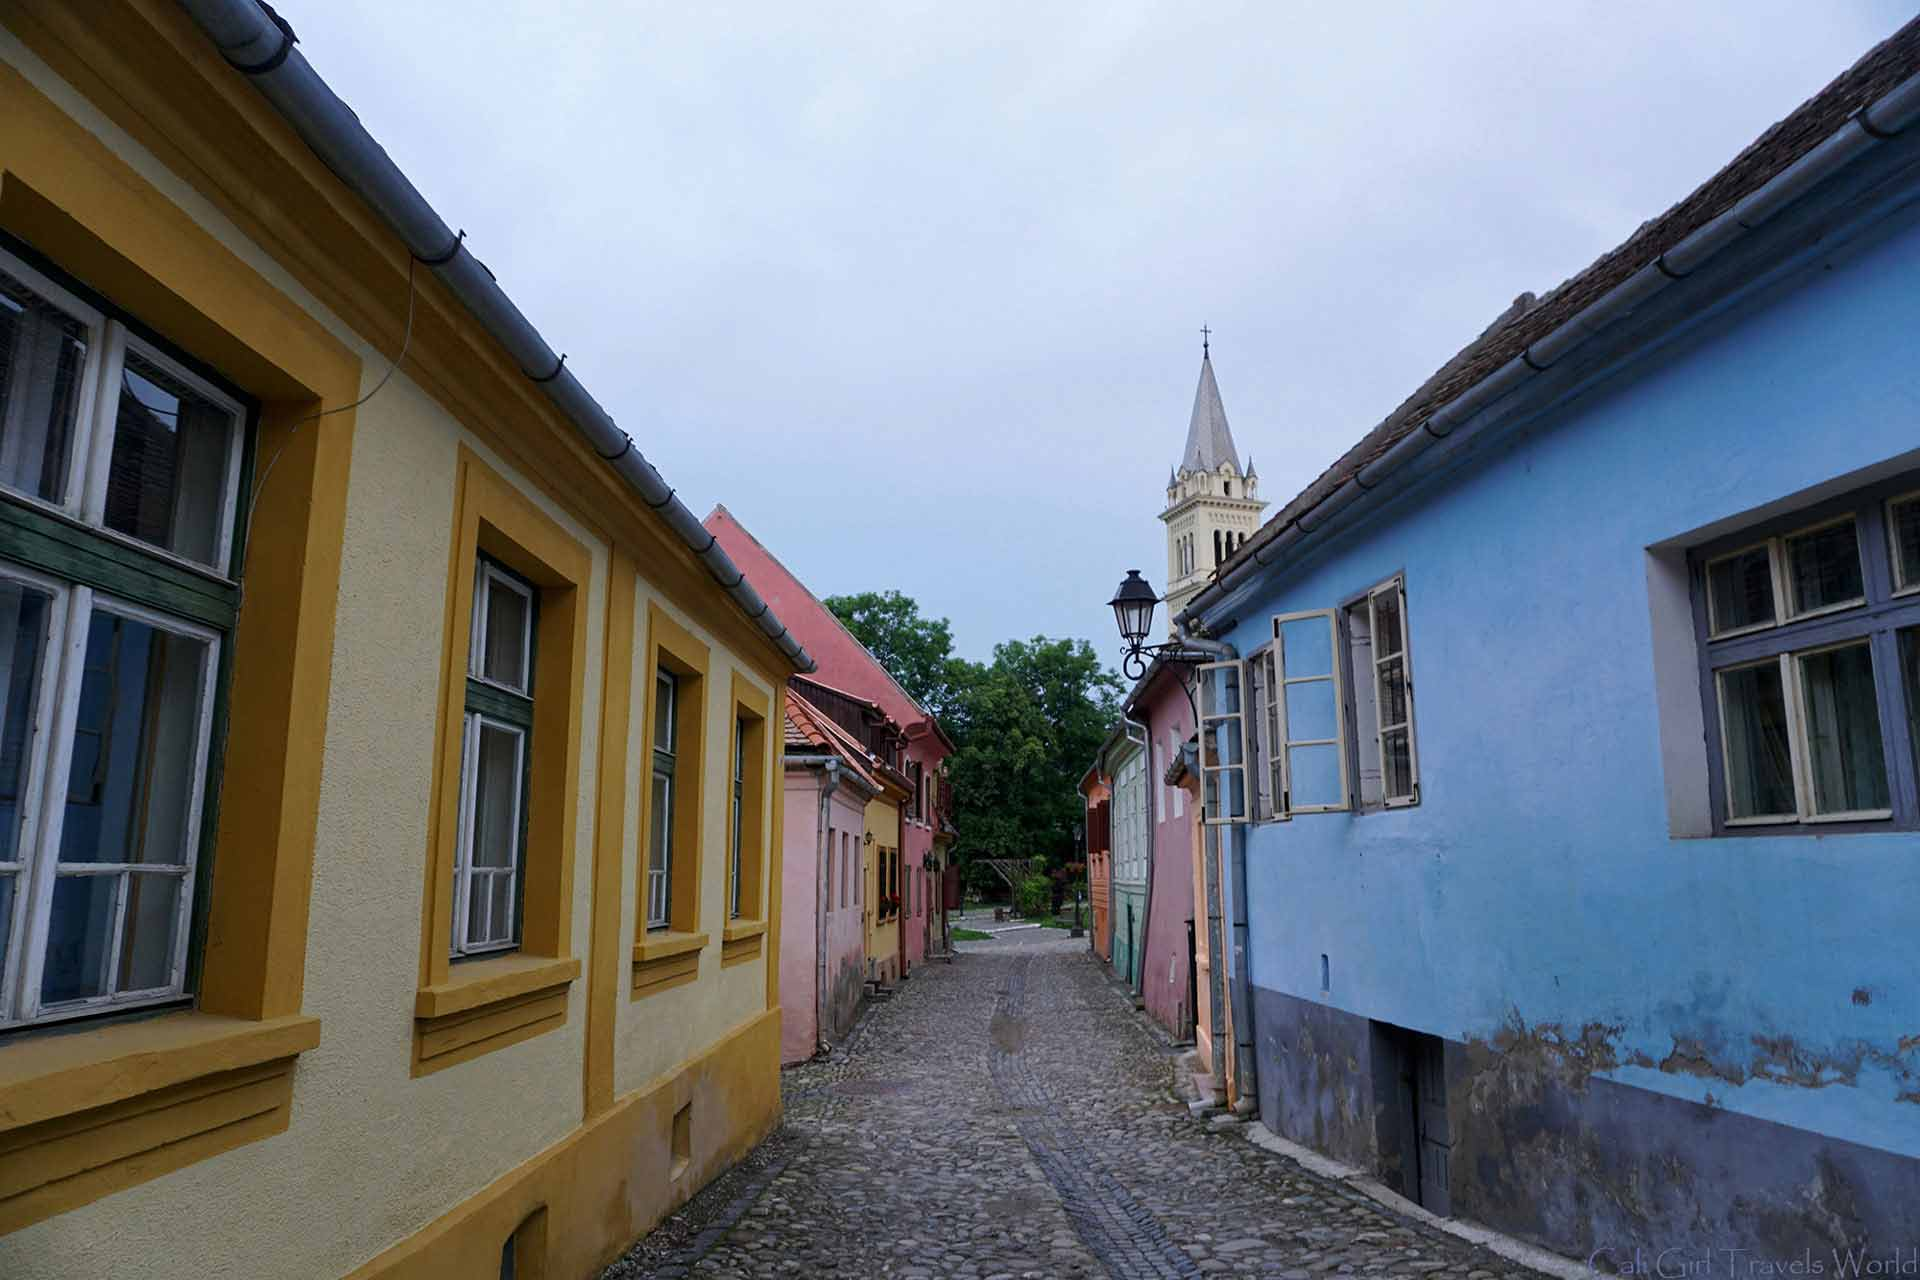 Colorful quaint street with a spire at the end.